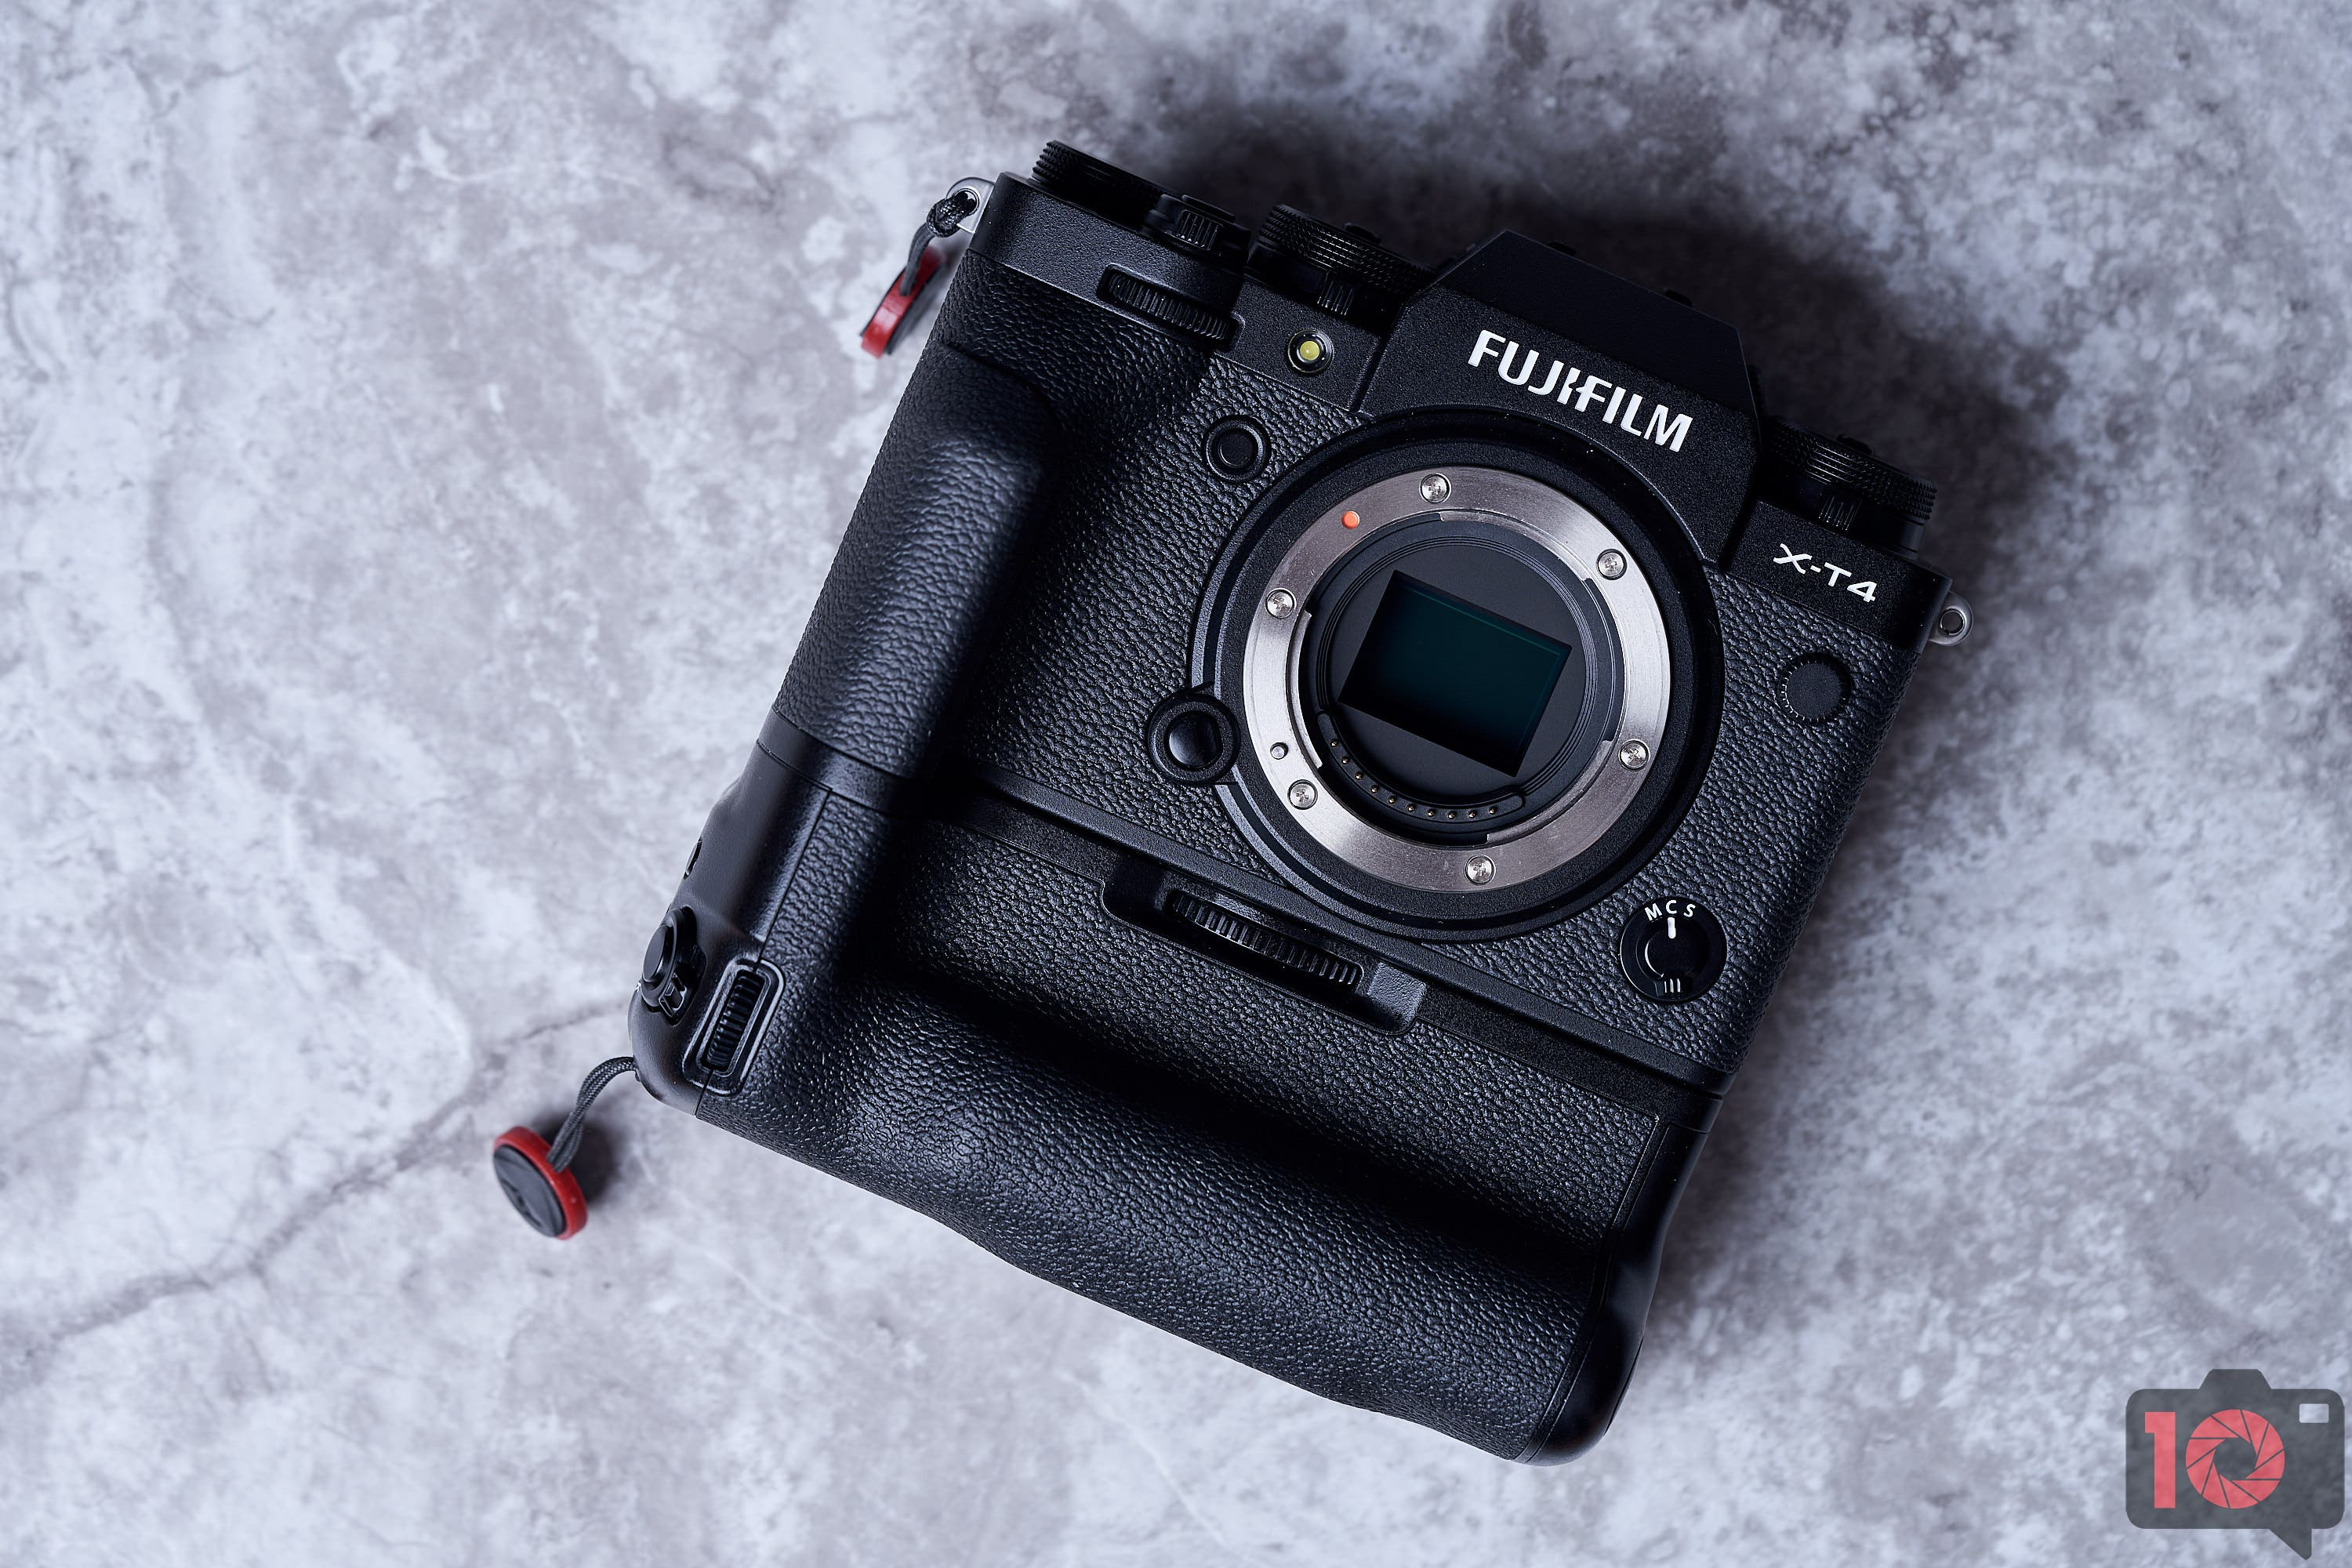 Fujifilm Cameras and Lenses Receive Big Price Cuts for the Holidays